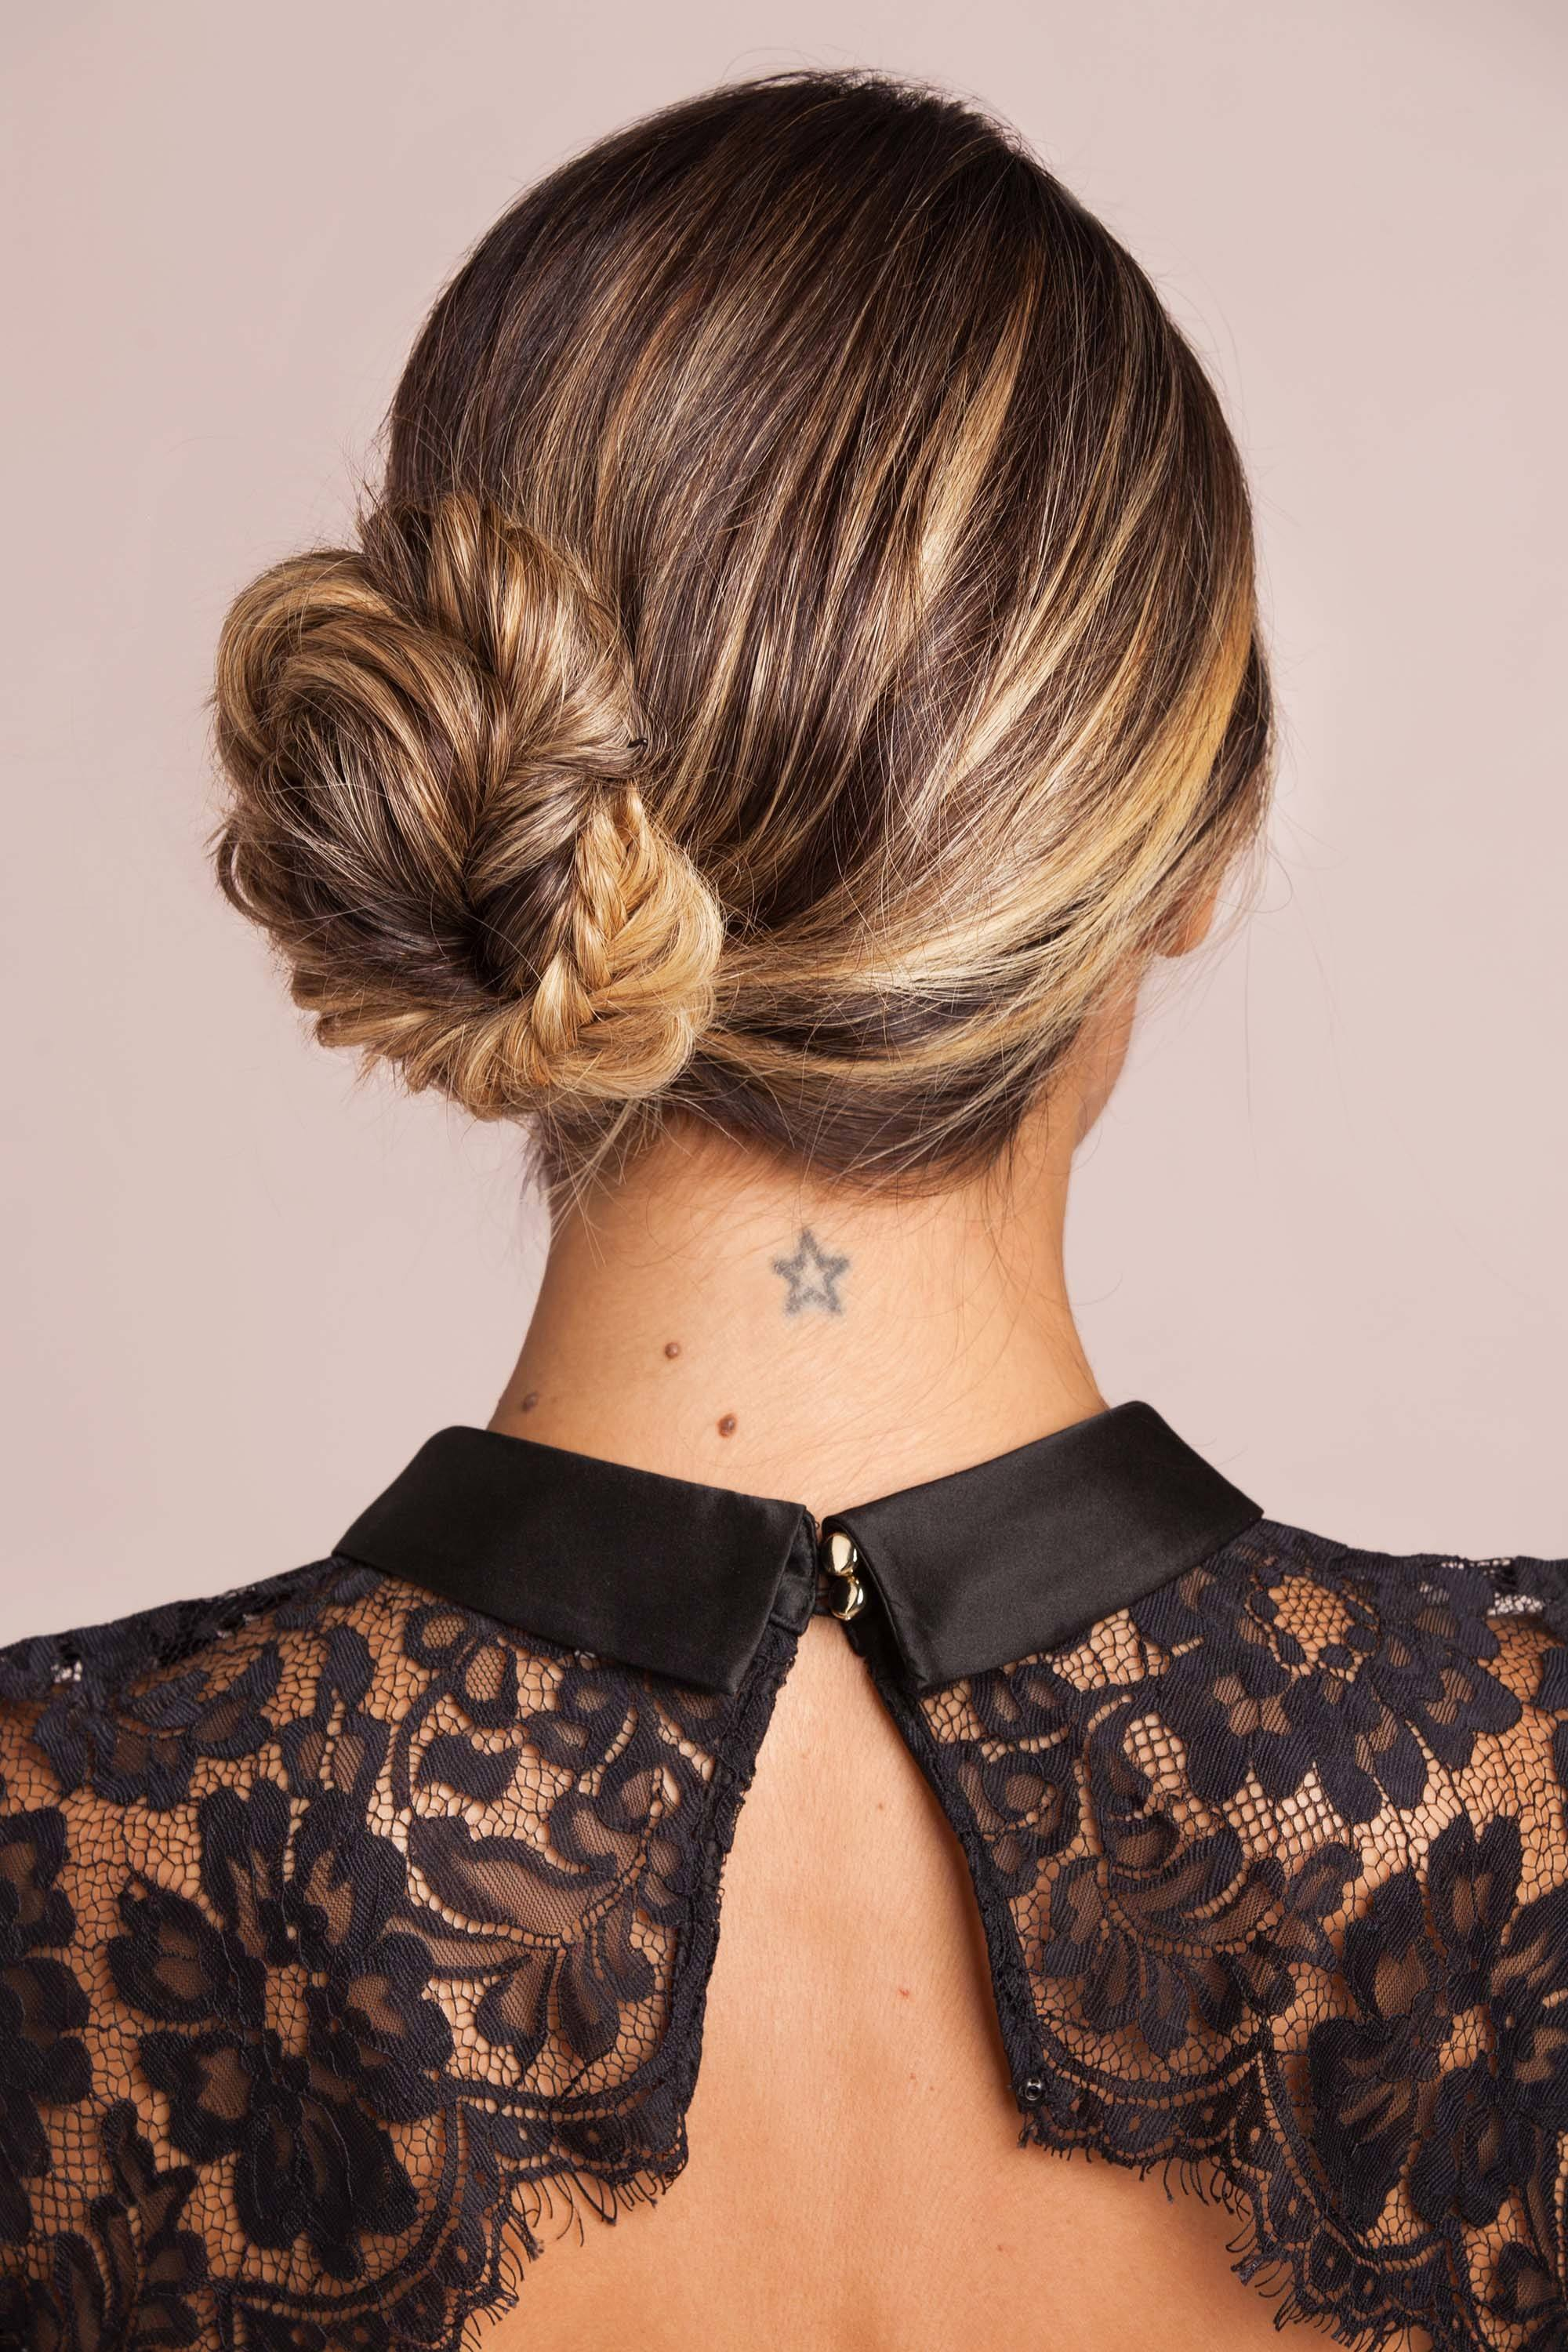 Updos with braids: Back shot of a woman with brown bronde hair styled into a side fishtail braided bun.